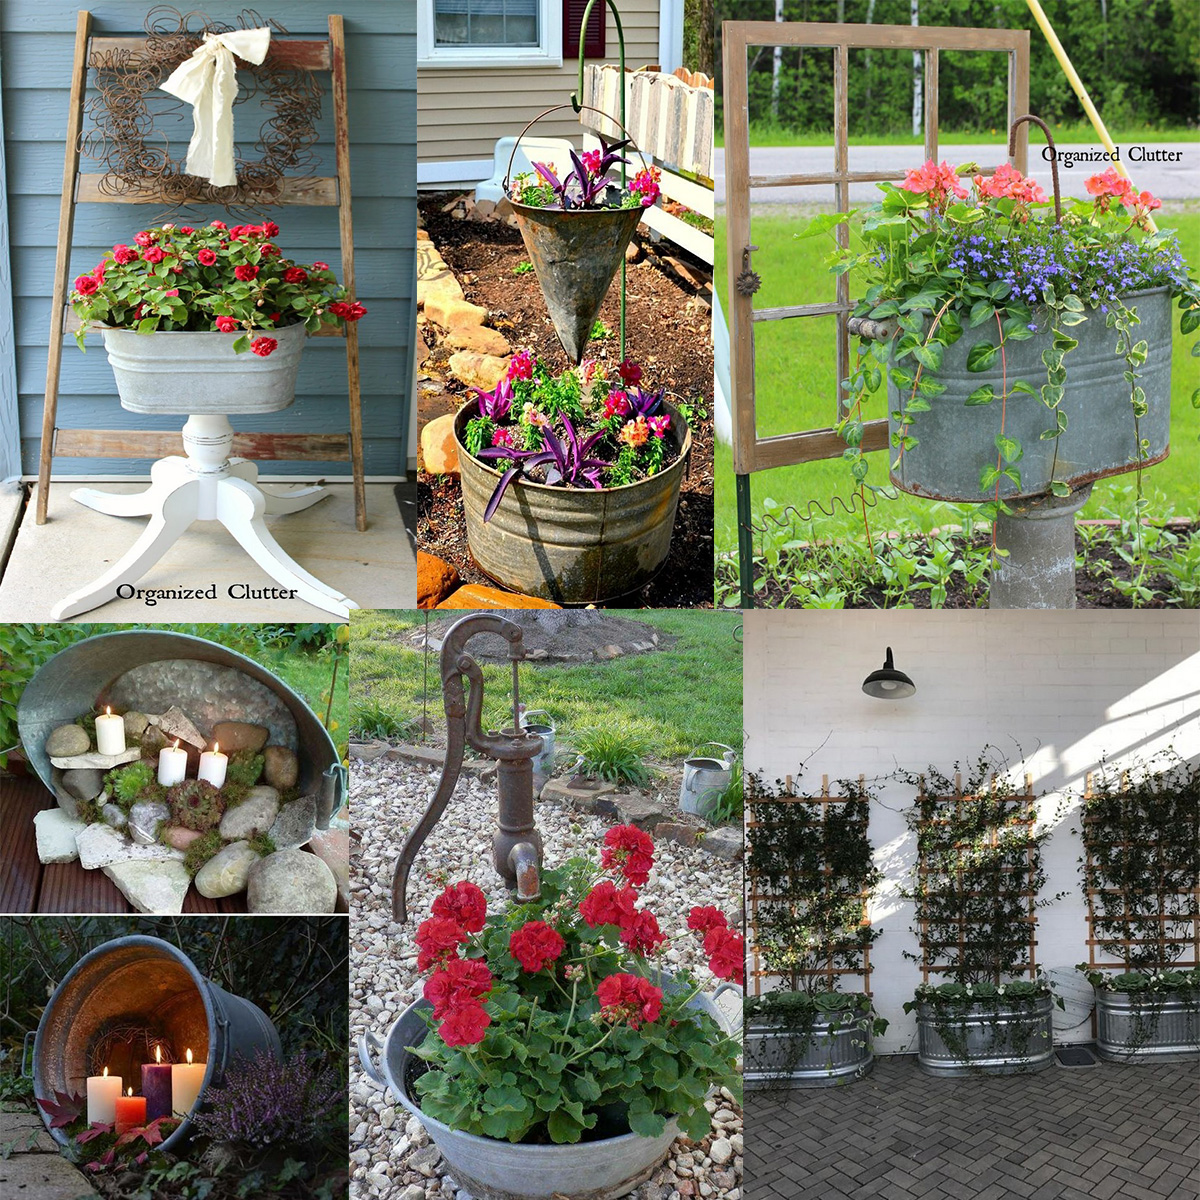 Today we prepare great ideas for you how to use galvanized tubs in your garden